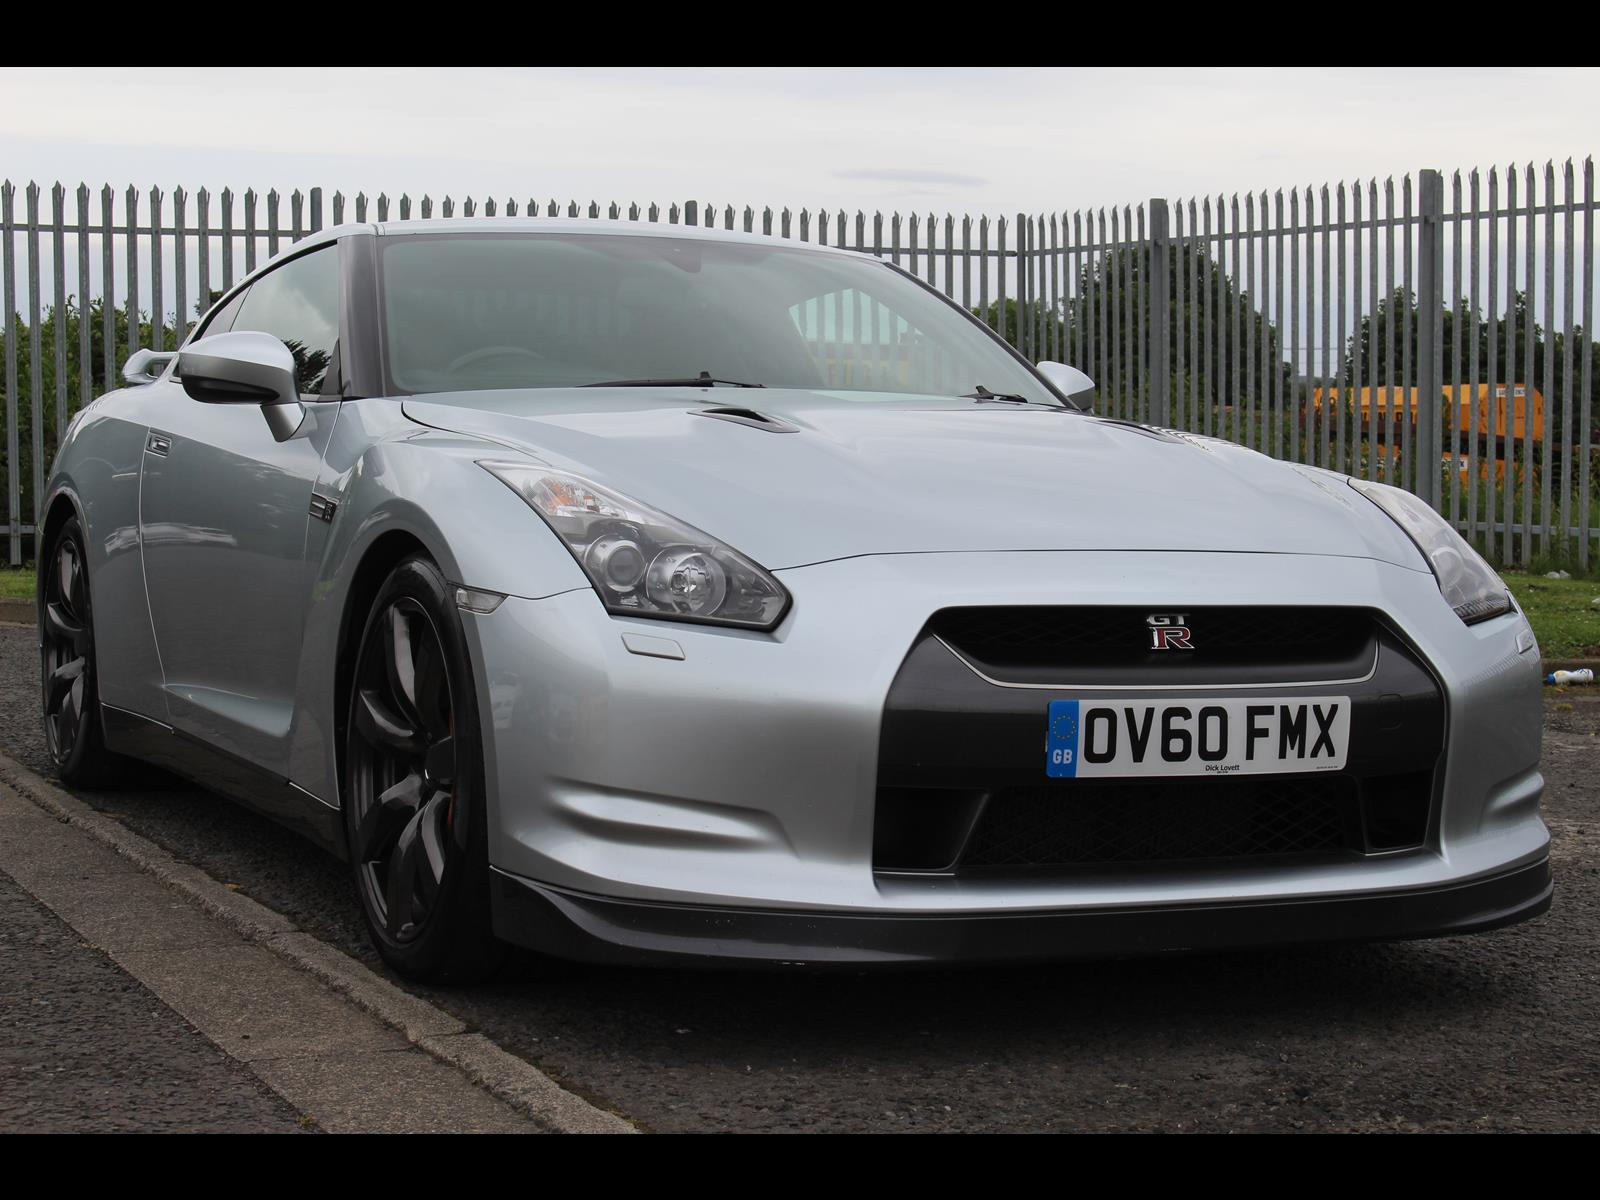 2010 nissan gtr black edition uk model stage 4 600bhp. Black Bedroom Furniture Sets. Home Design Ideas